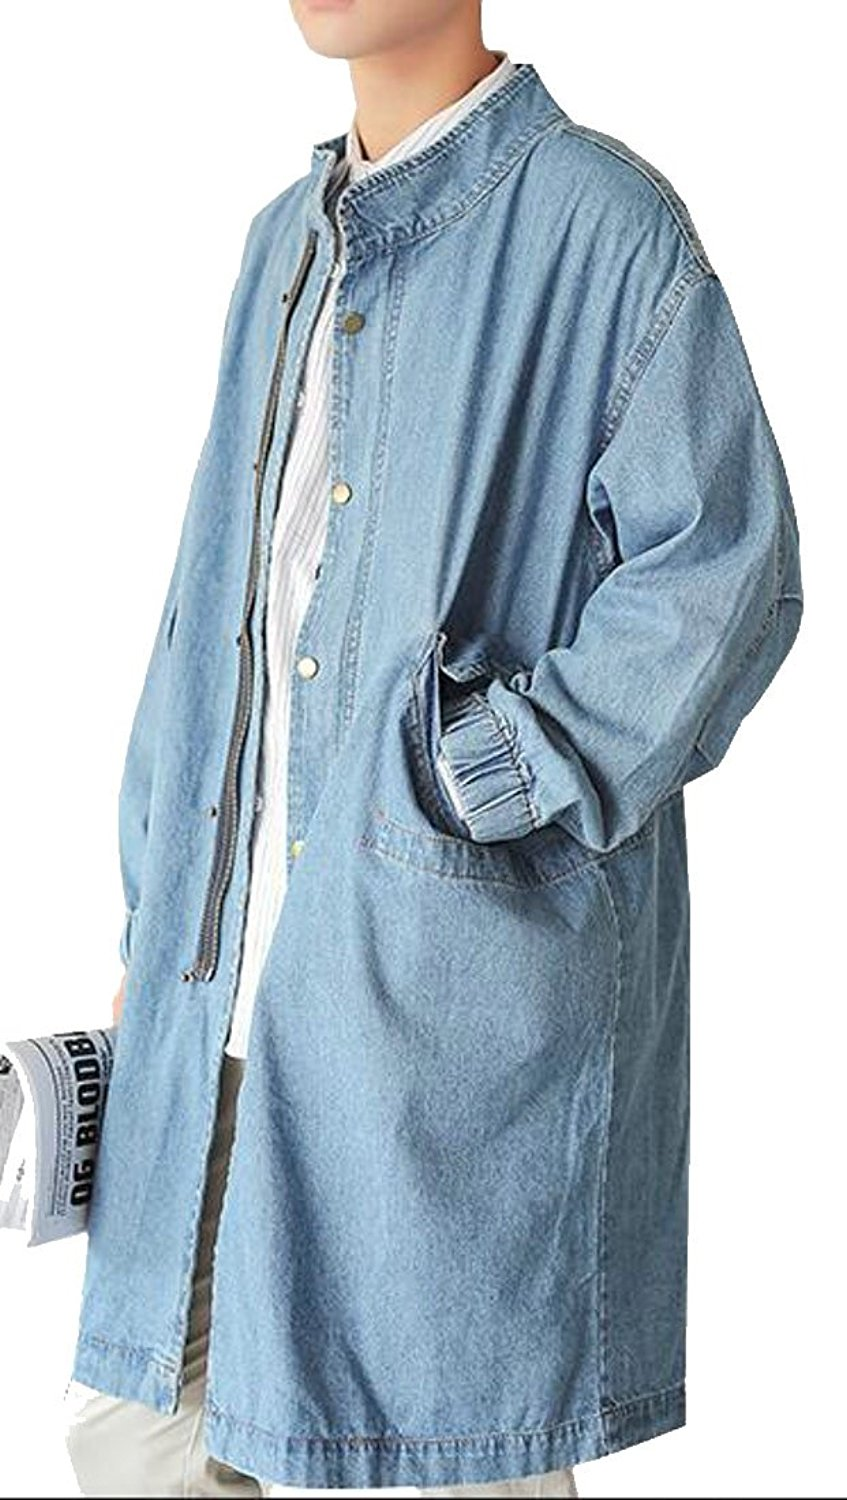 ONTBYB Mens Loose Fit Single Breasted Denim Trench Coat Jacket Clothes